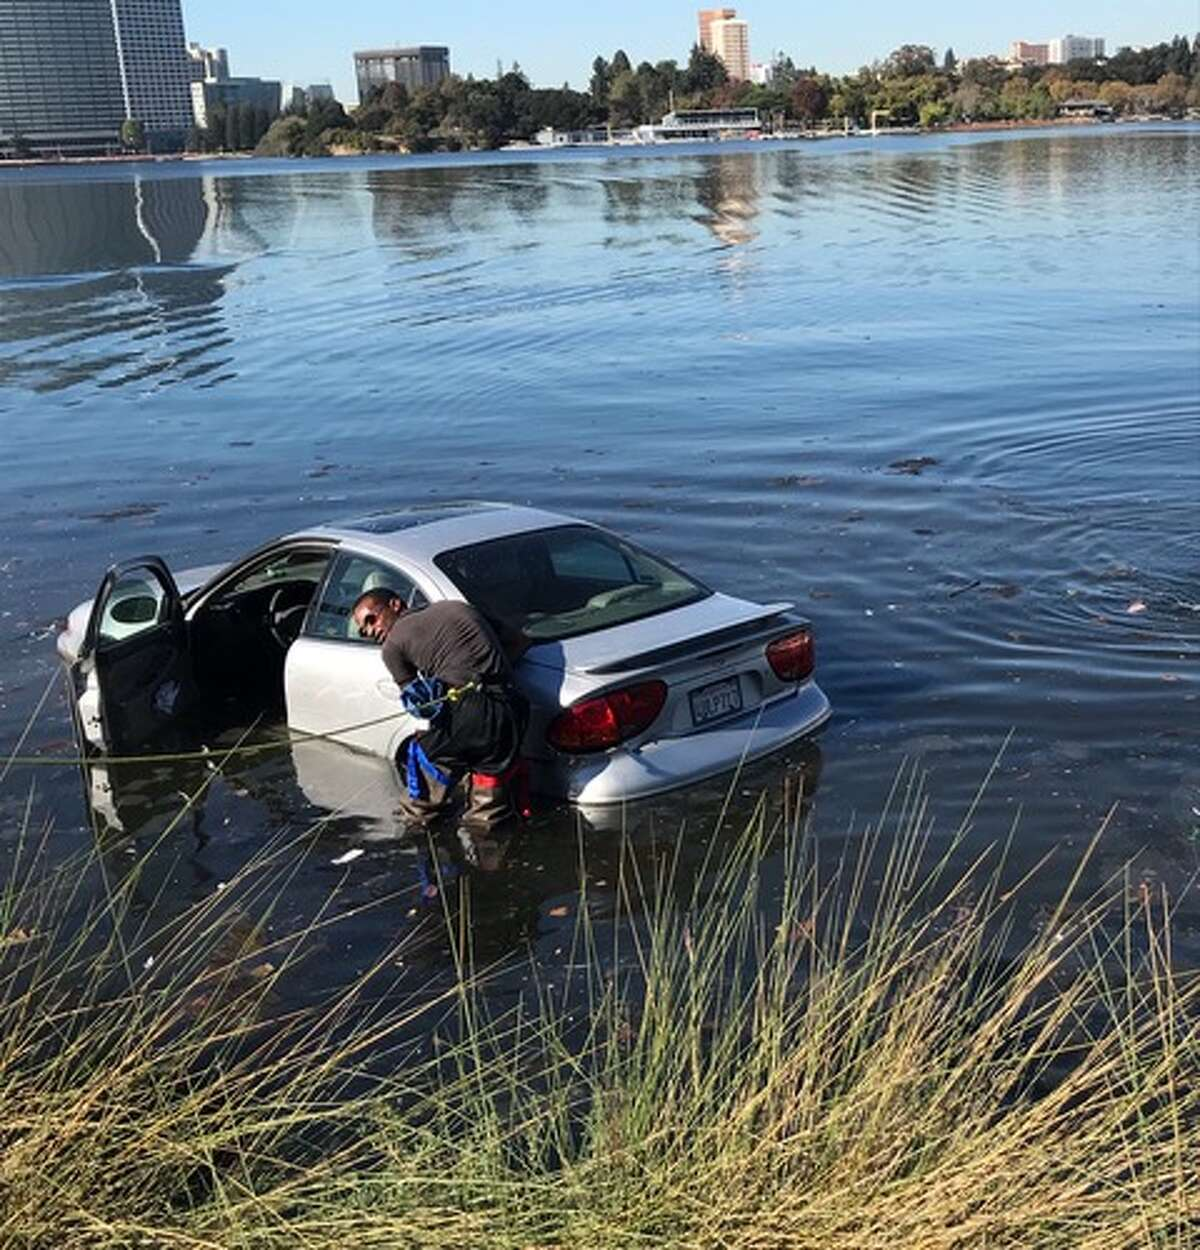 Plenty of unusual items have made its way to Lake Merritt, thanks to careless folks who have illegally dumped their trash into the water. The Lake Merritt Institute takes on the thousands of pounds of trash that lands in the lake and disposes of it properly.